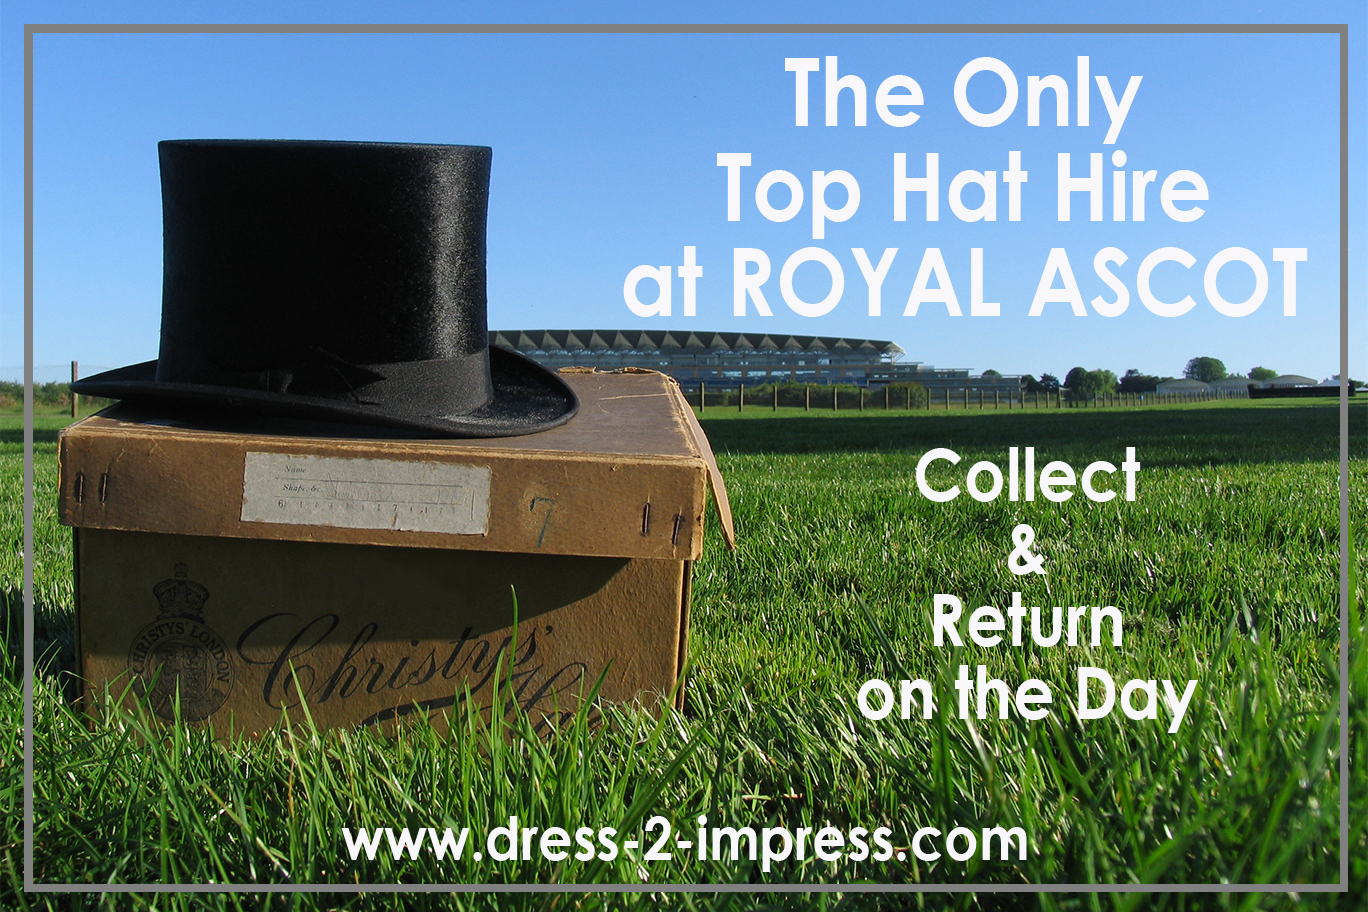 Top Hats for Ascot. Top Hat Hire Royal Ascot. Top Hat Hire at Royal Ascot Races. Mens Top Hats for Royal Ascot. What to wear for Royal Ascot.